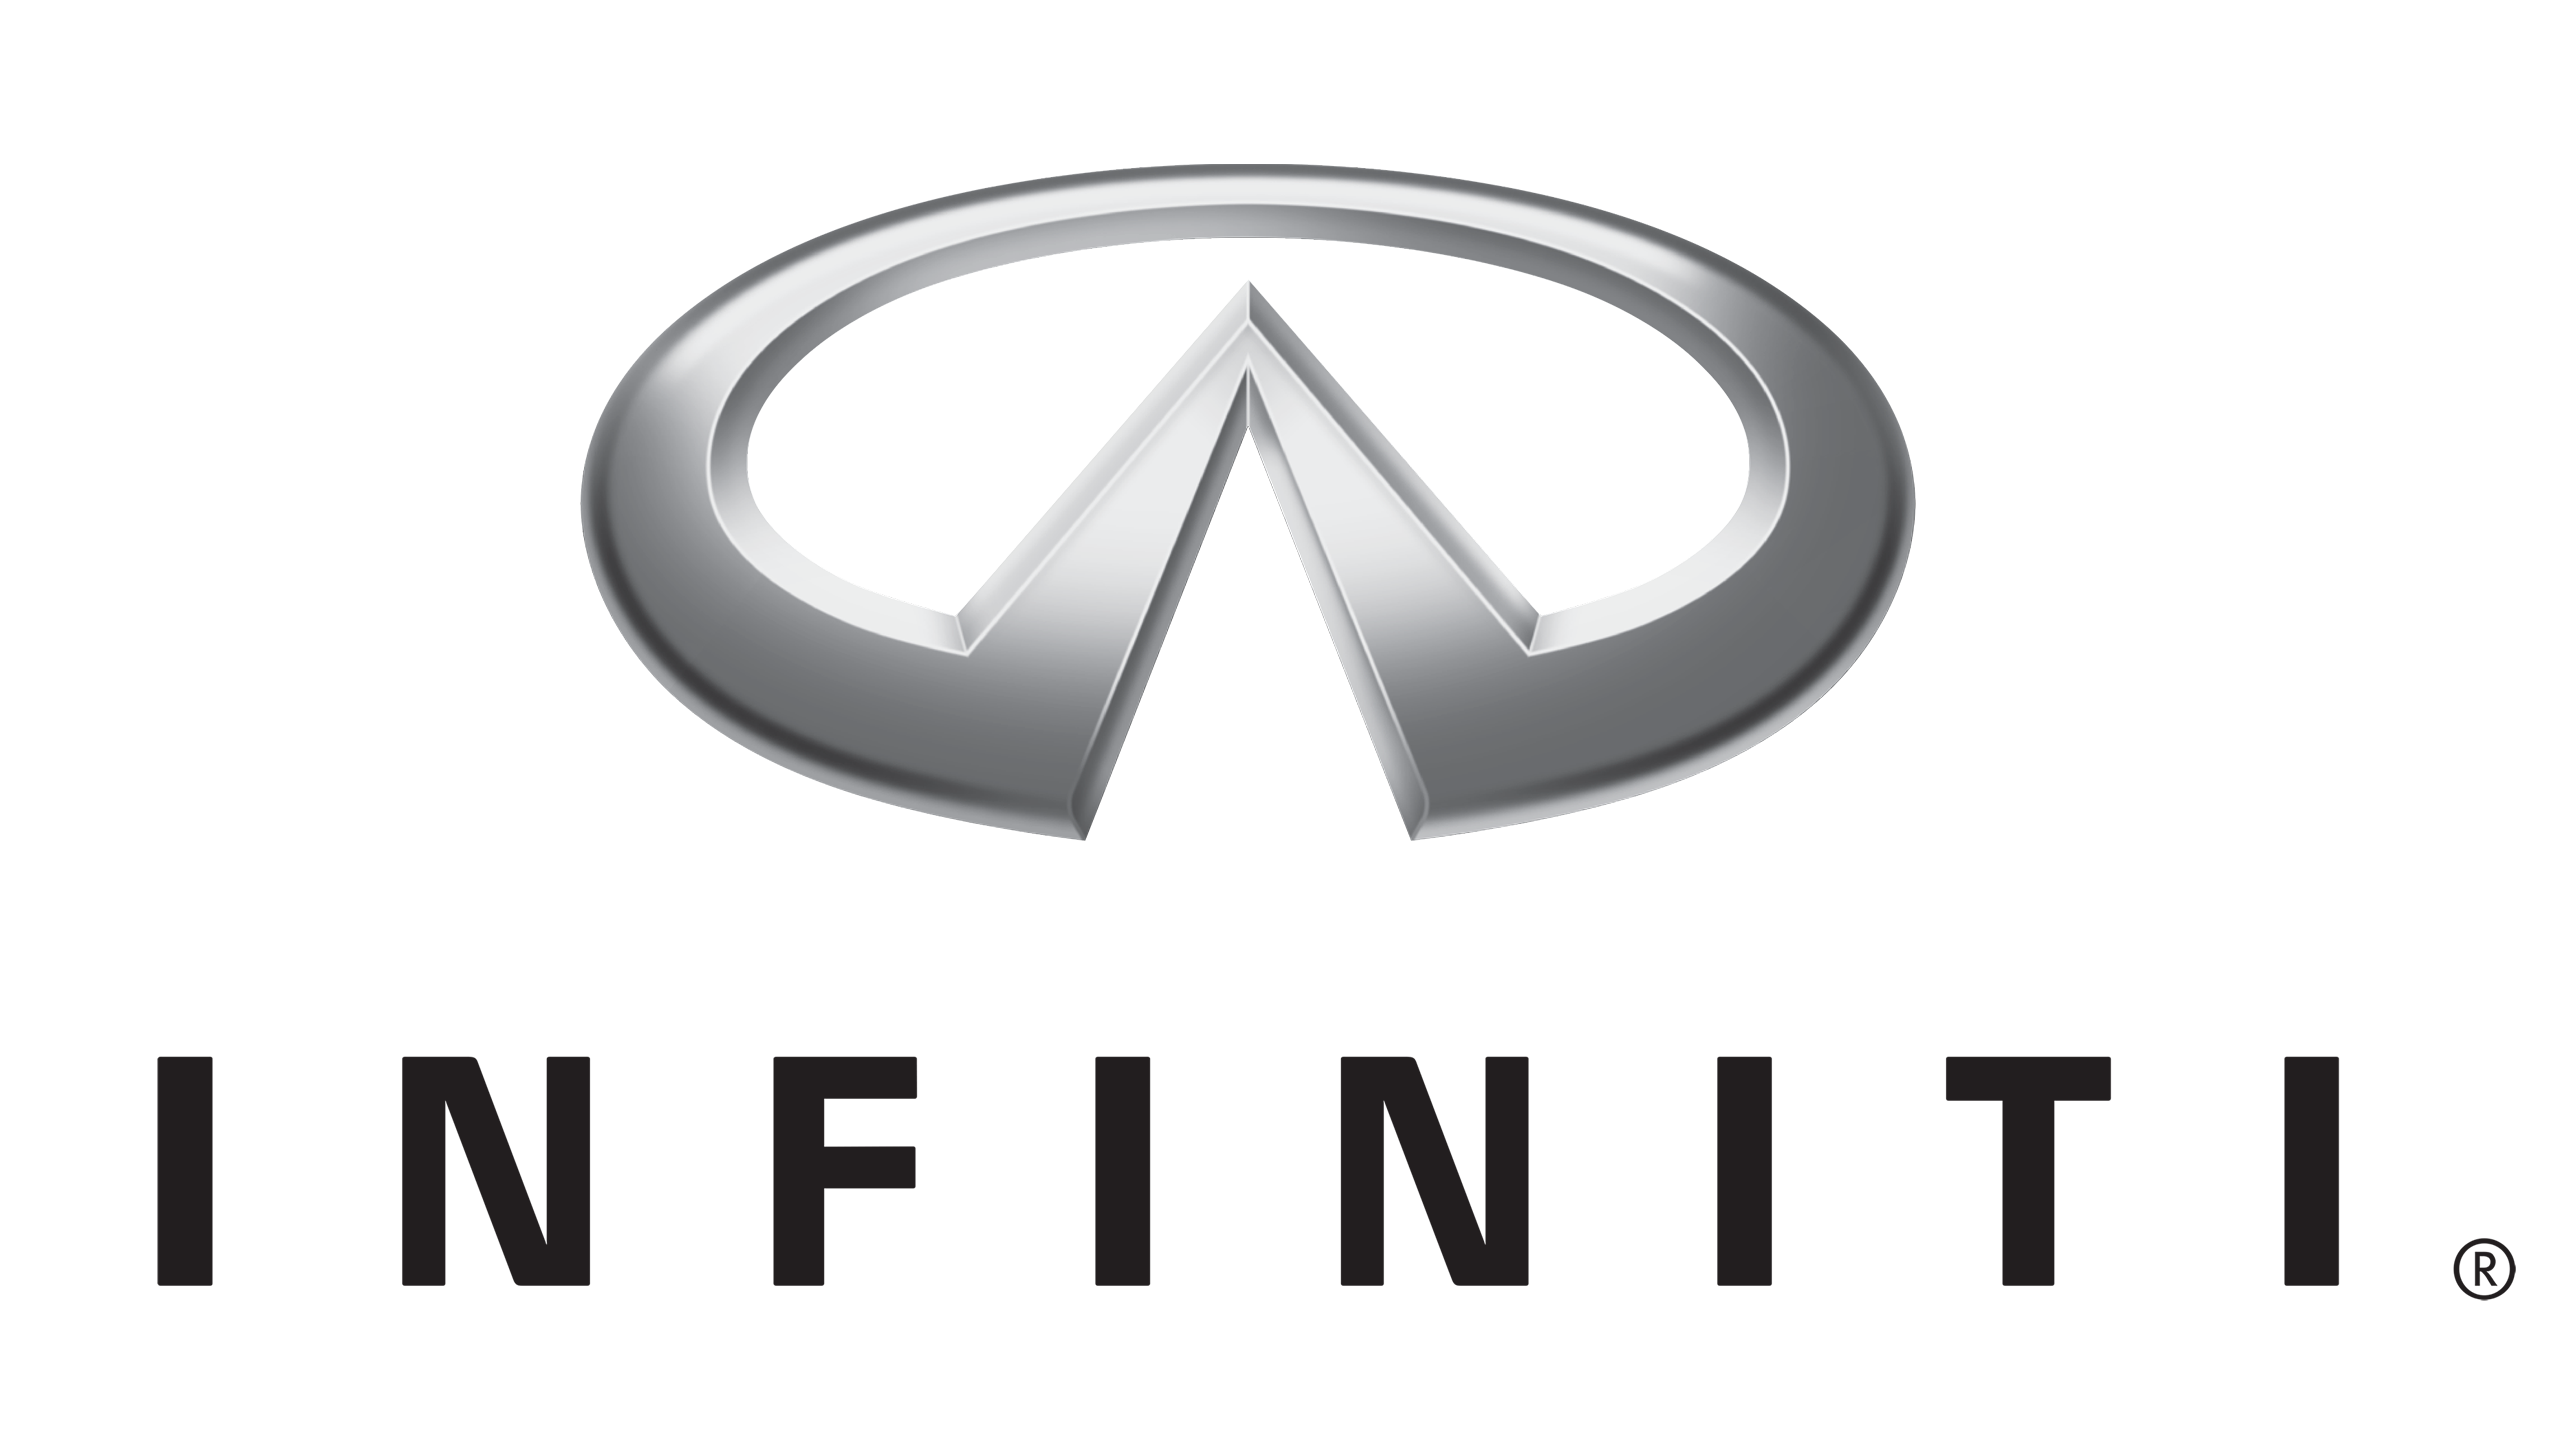 Infinity car logo png. Infiniti hd meaning information